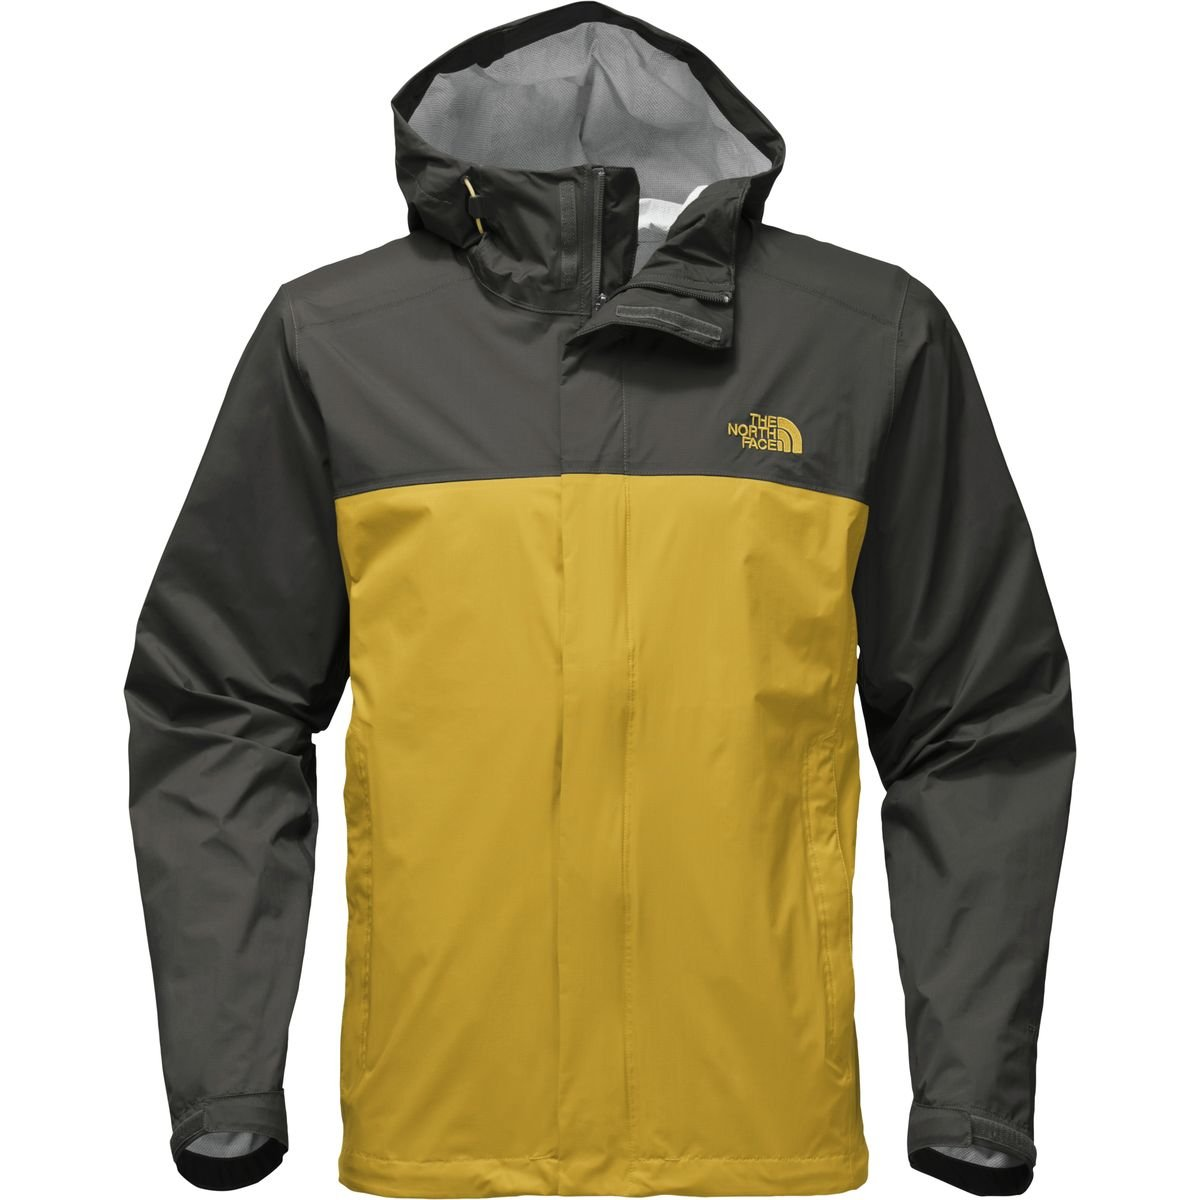 The North Face Men's Venture 2 Jacket - Arrowwood Yellow/Asphaltgry - L (Past Season) by The North Face